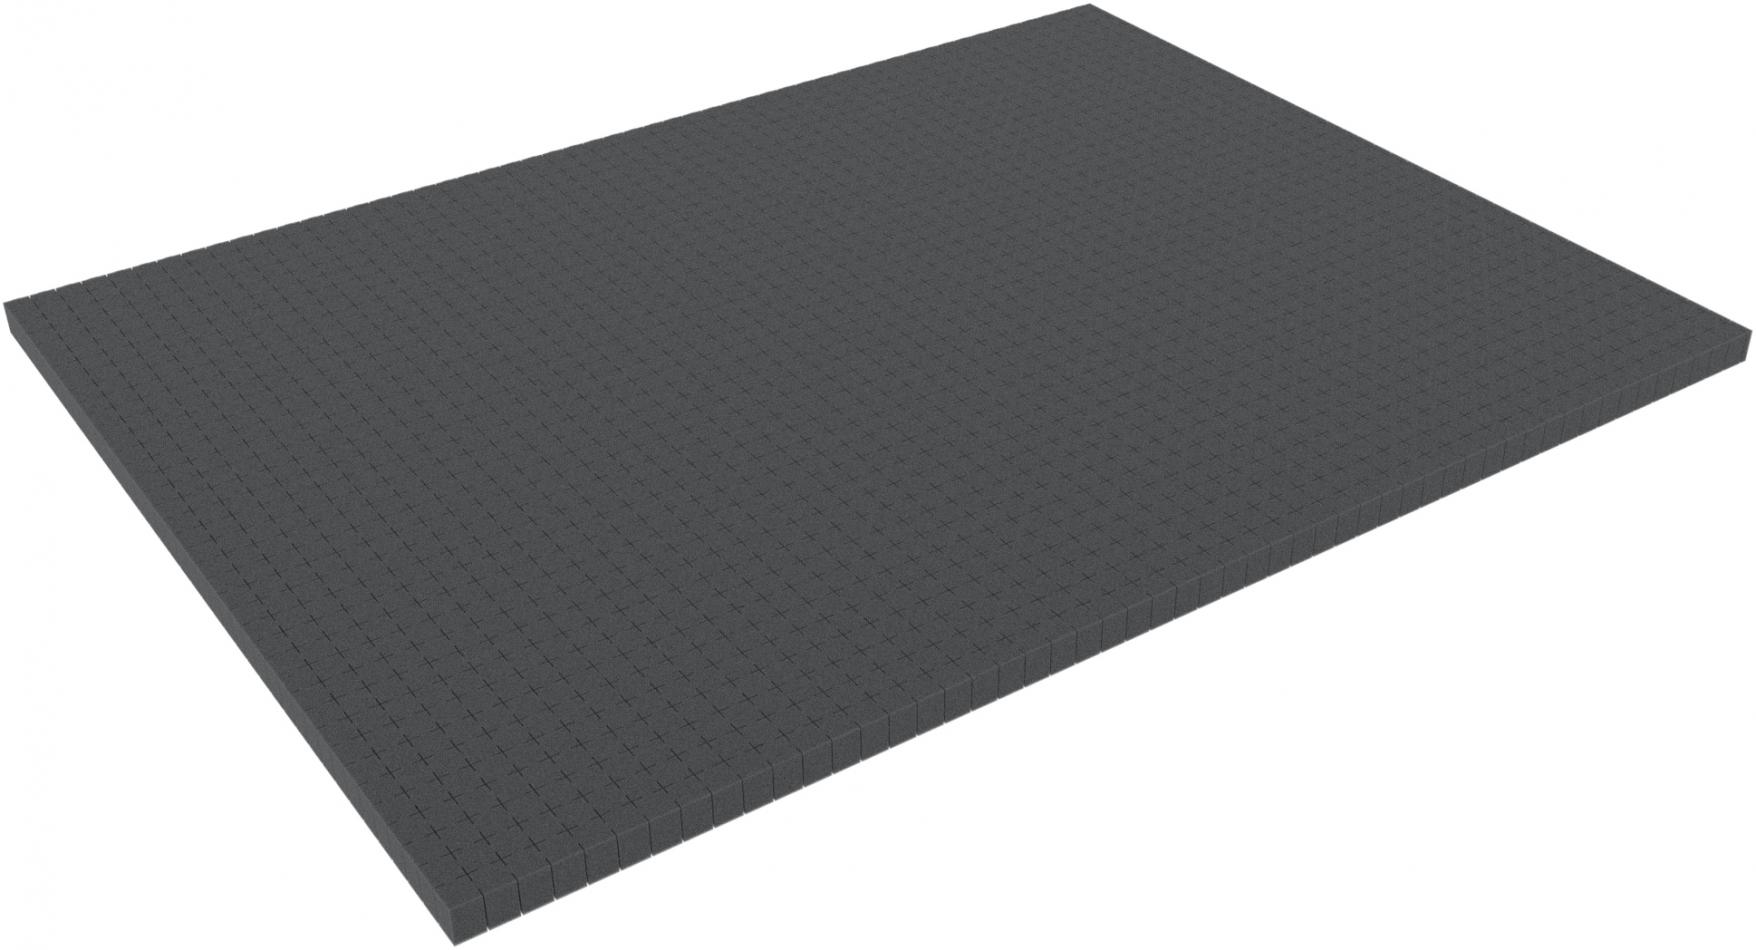 800 mm x 600 mm x 20 mm - Raster 15 mm - Pick and Pluck / Pre-Cubed foam tray